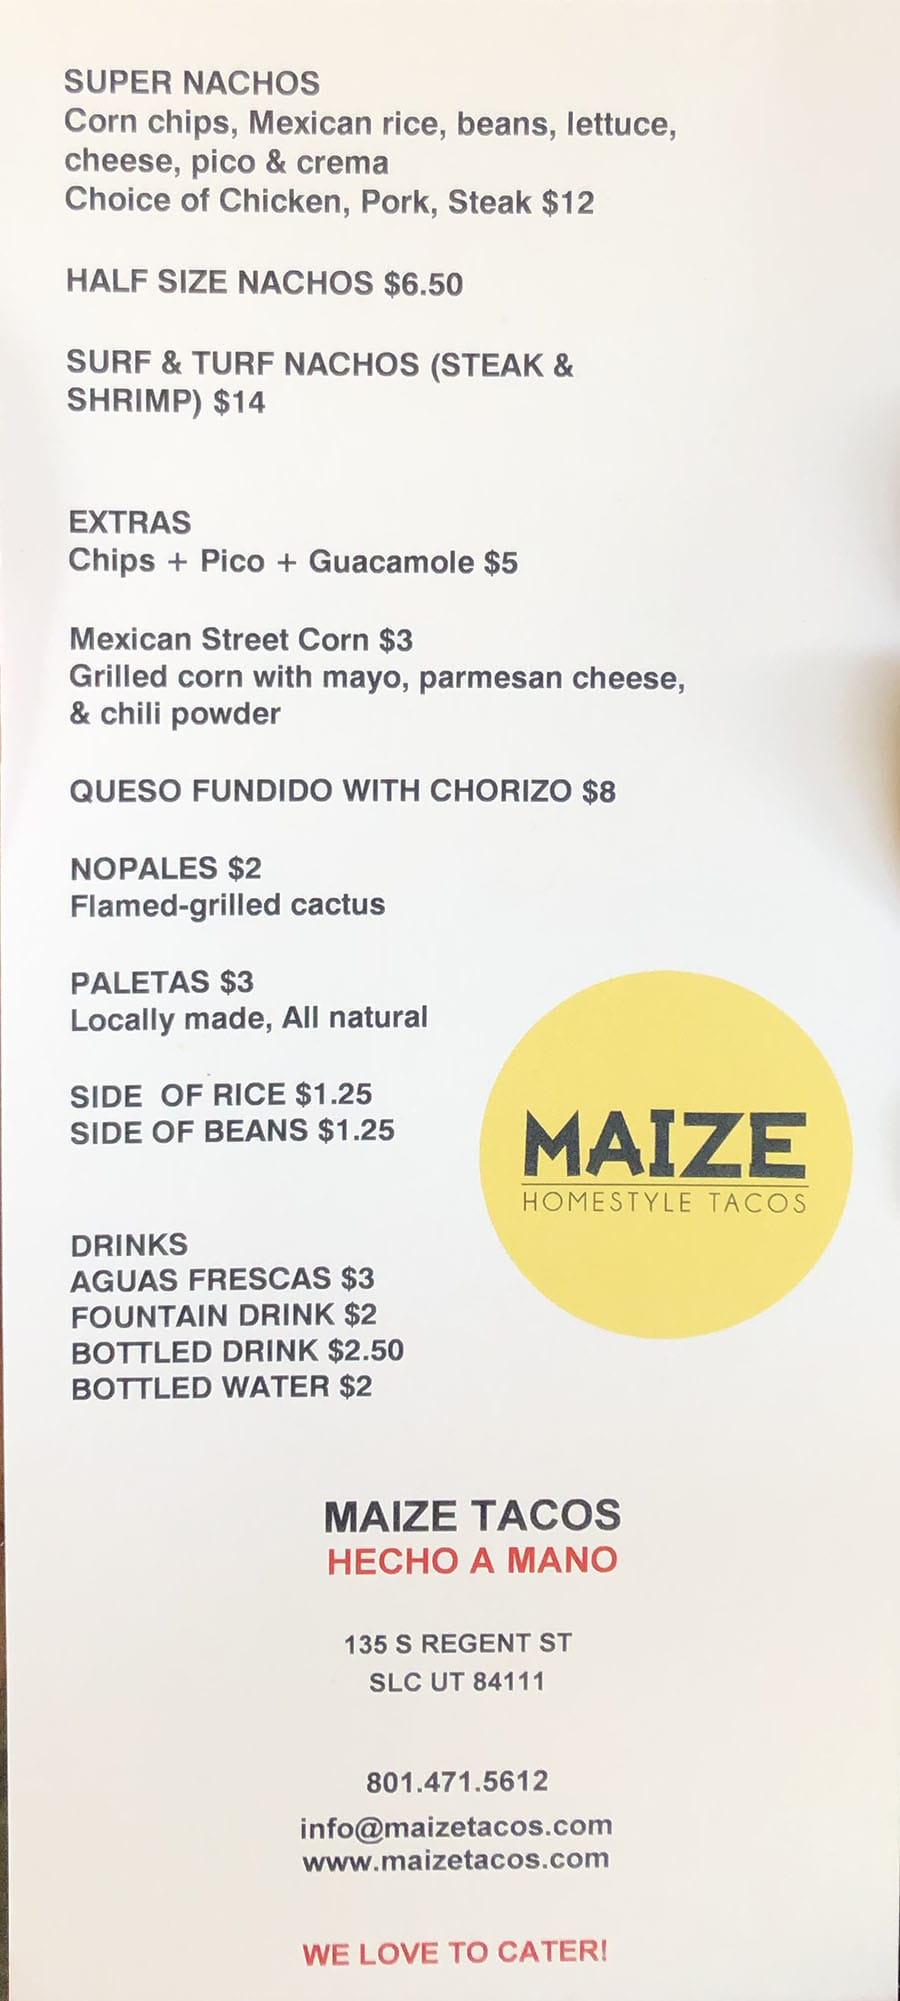 Maize Tacos menu - other items